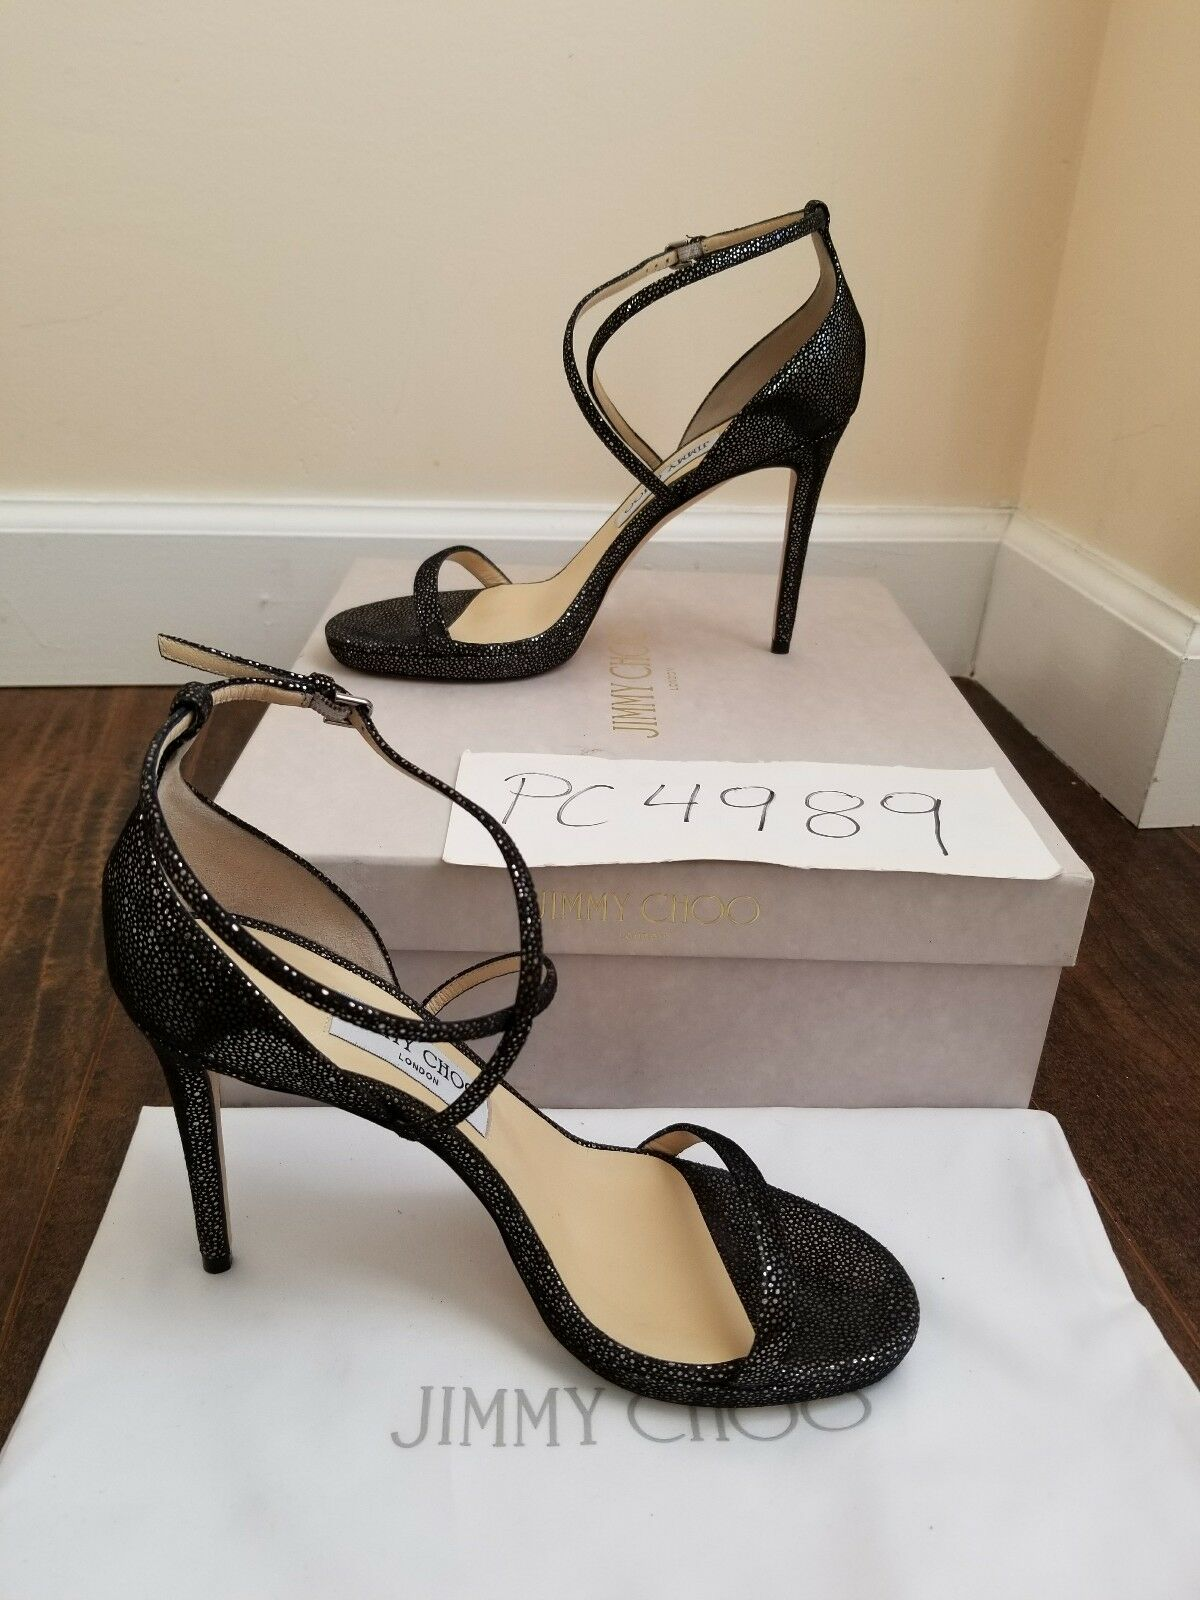 NWT Jimmy Choo HARPER 100 metallic spotted spotted spotted heels pumps 39.5 US 9 9.5 receipt 4b6877